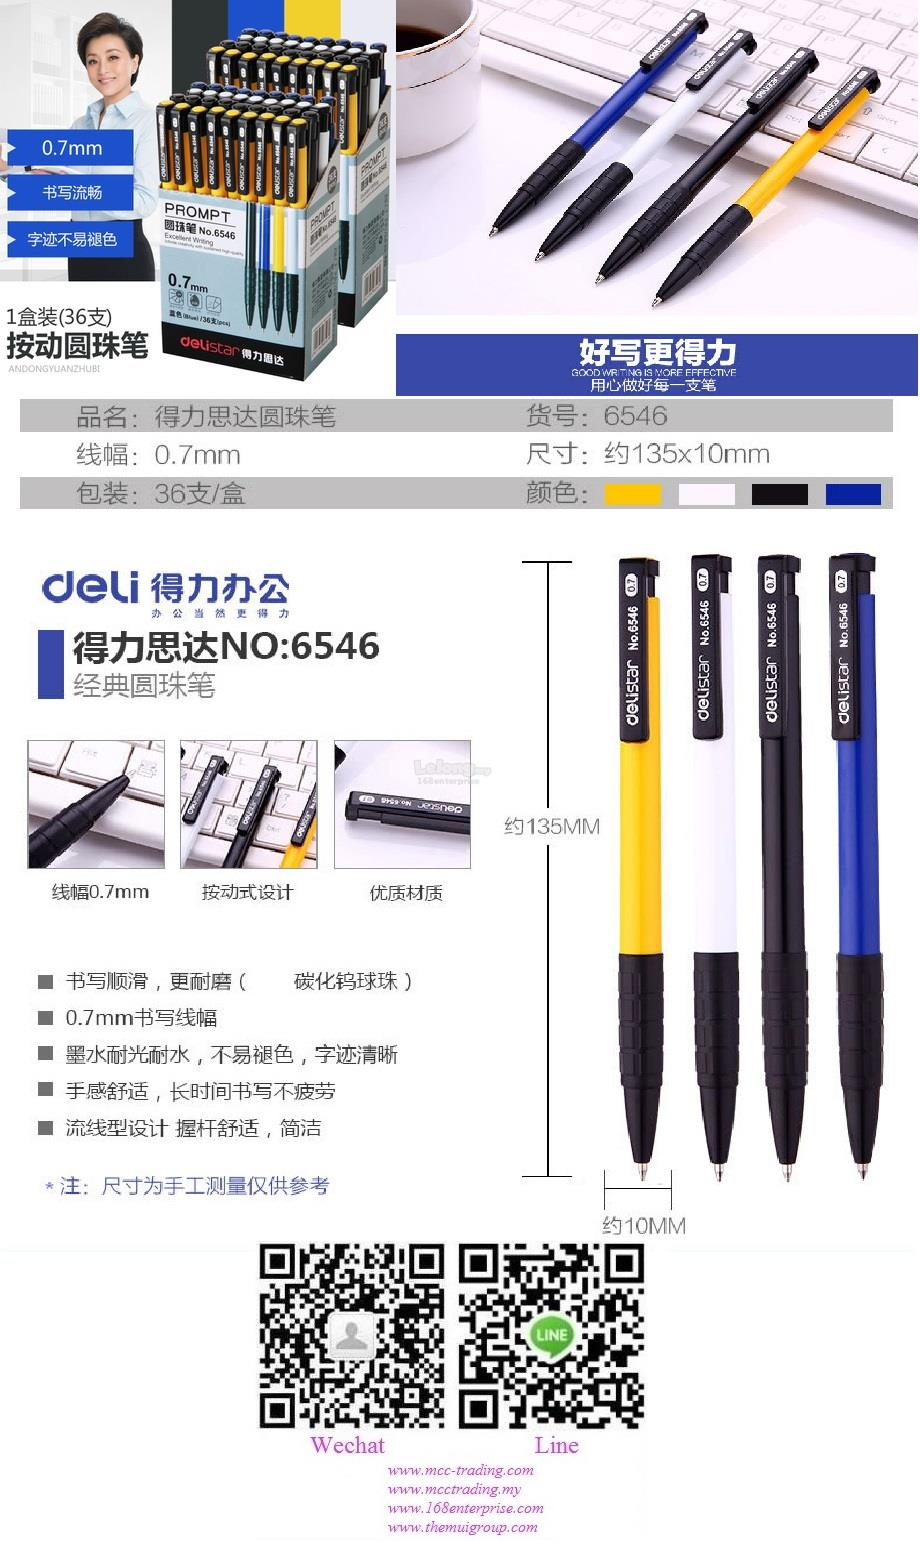 Best quality ballpen 0.7mm competitive in market(Dealer wanted)